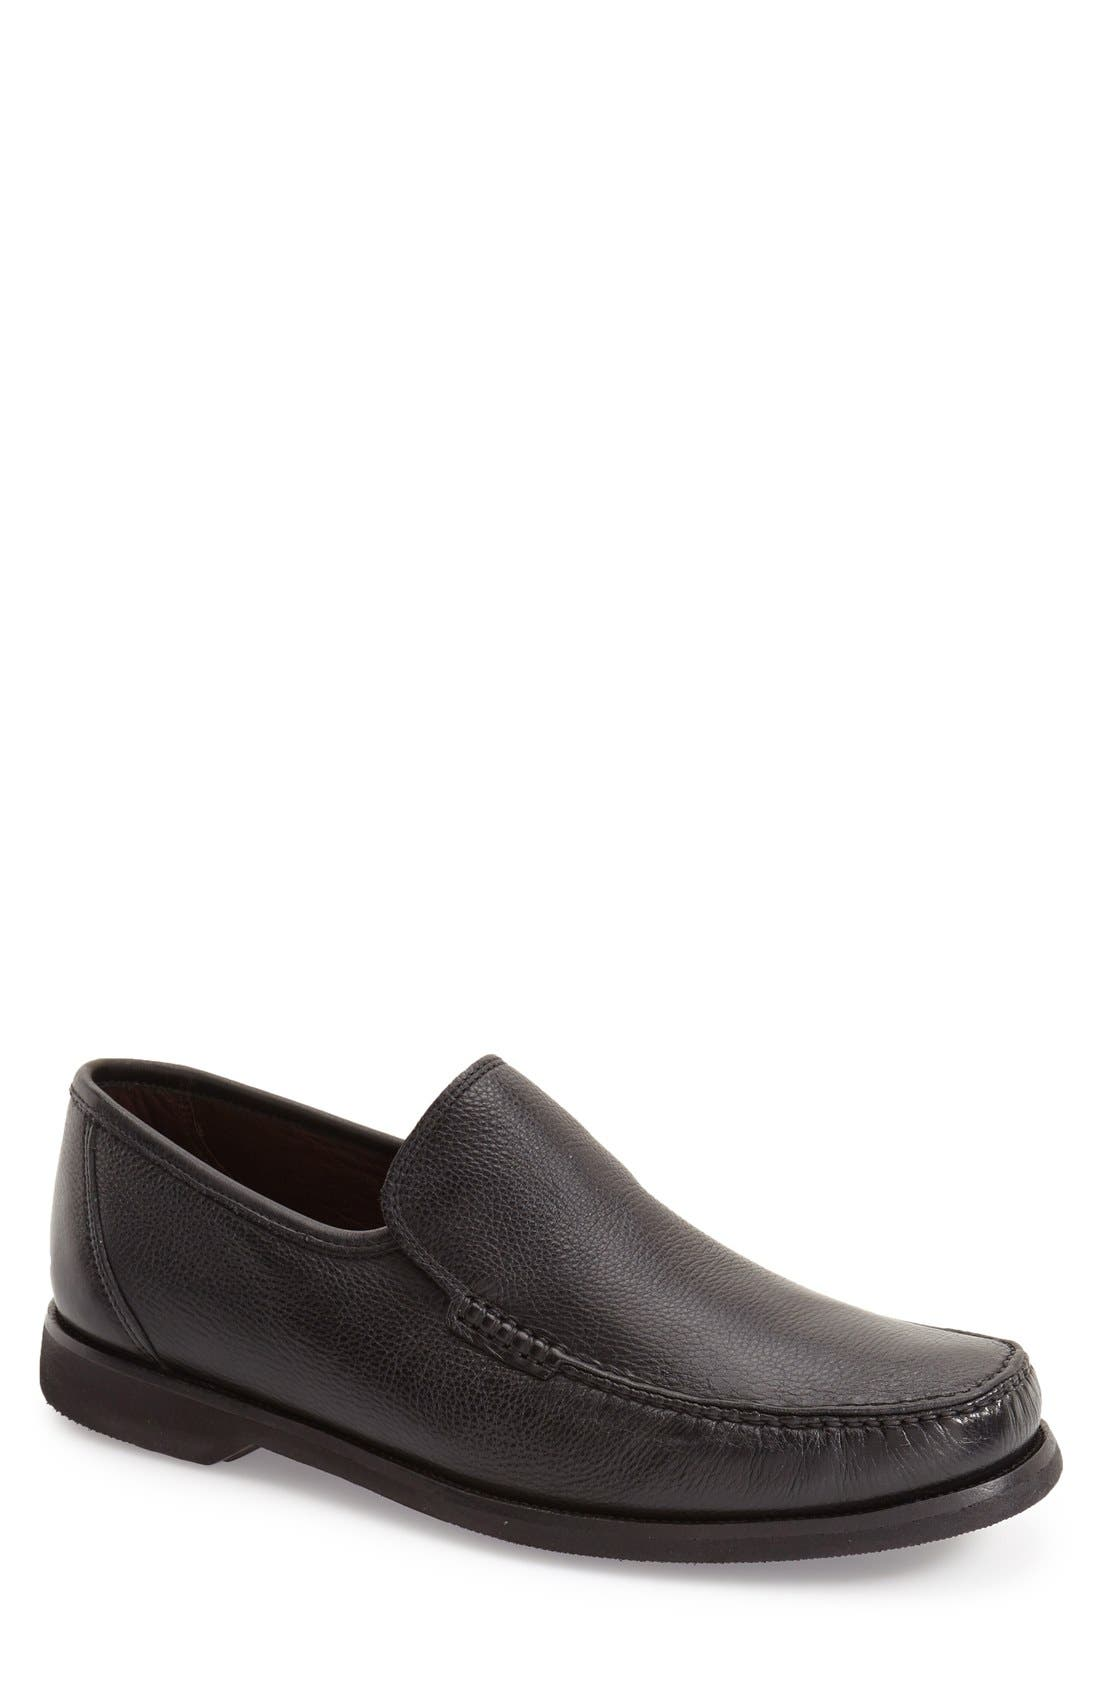 Angra Loafer,                         Main,                         color, 001